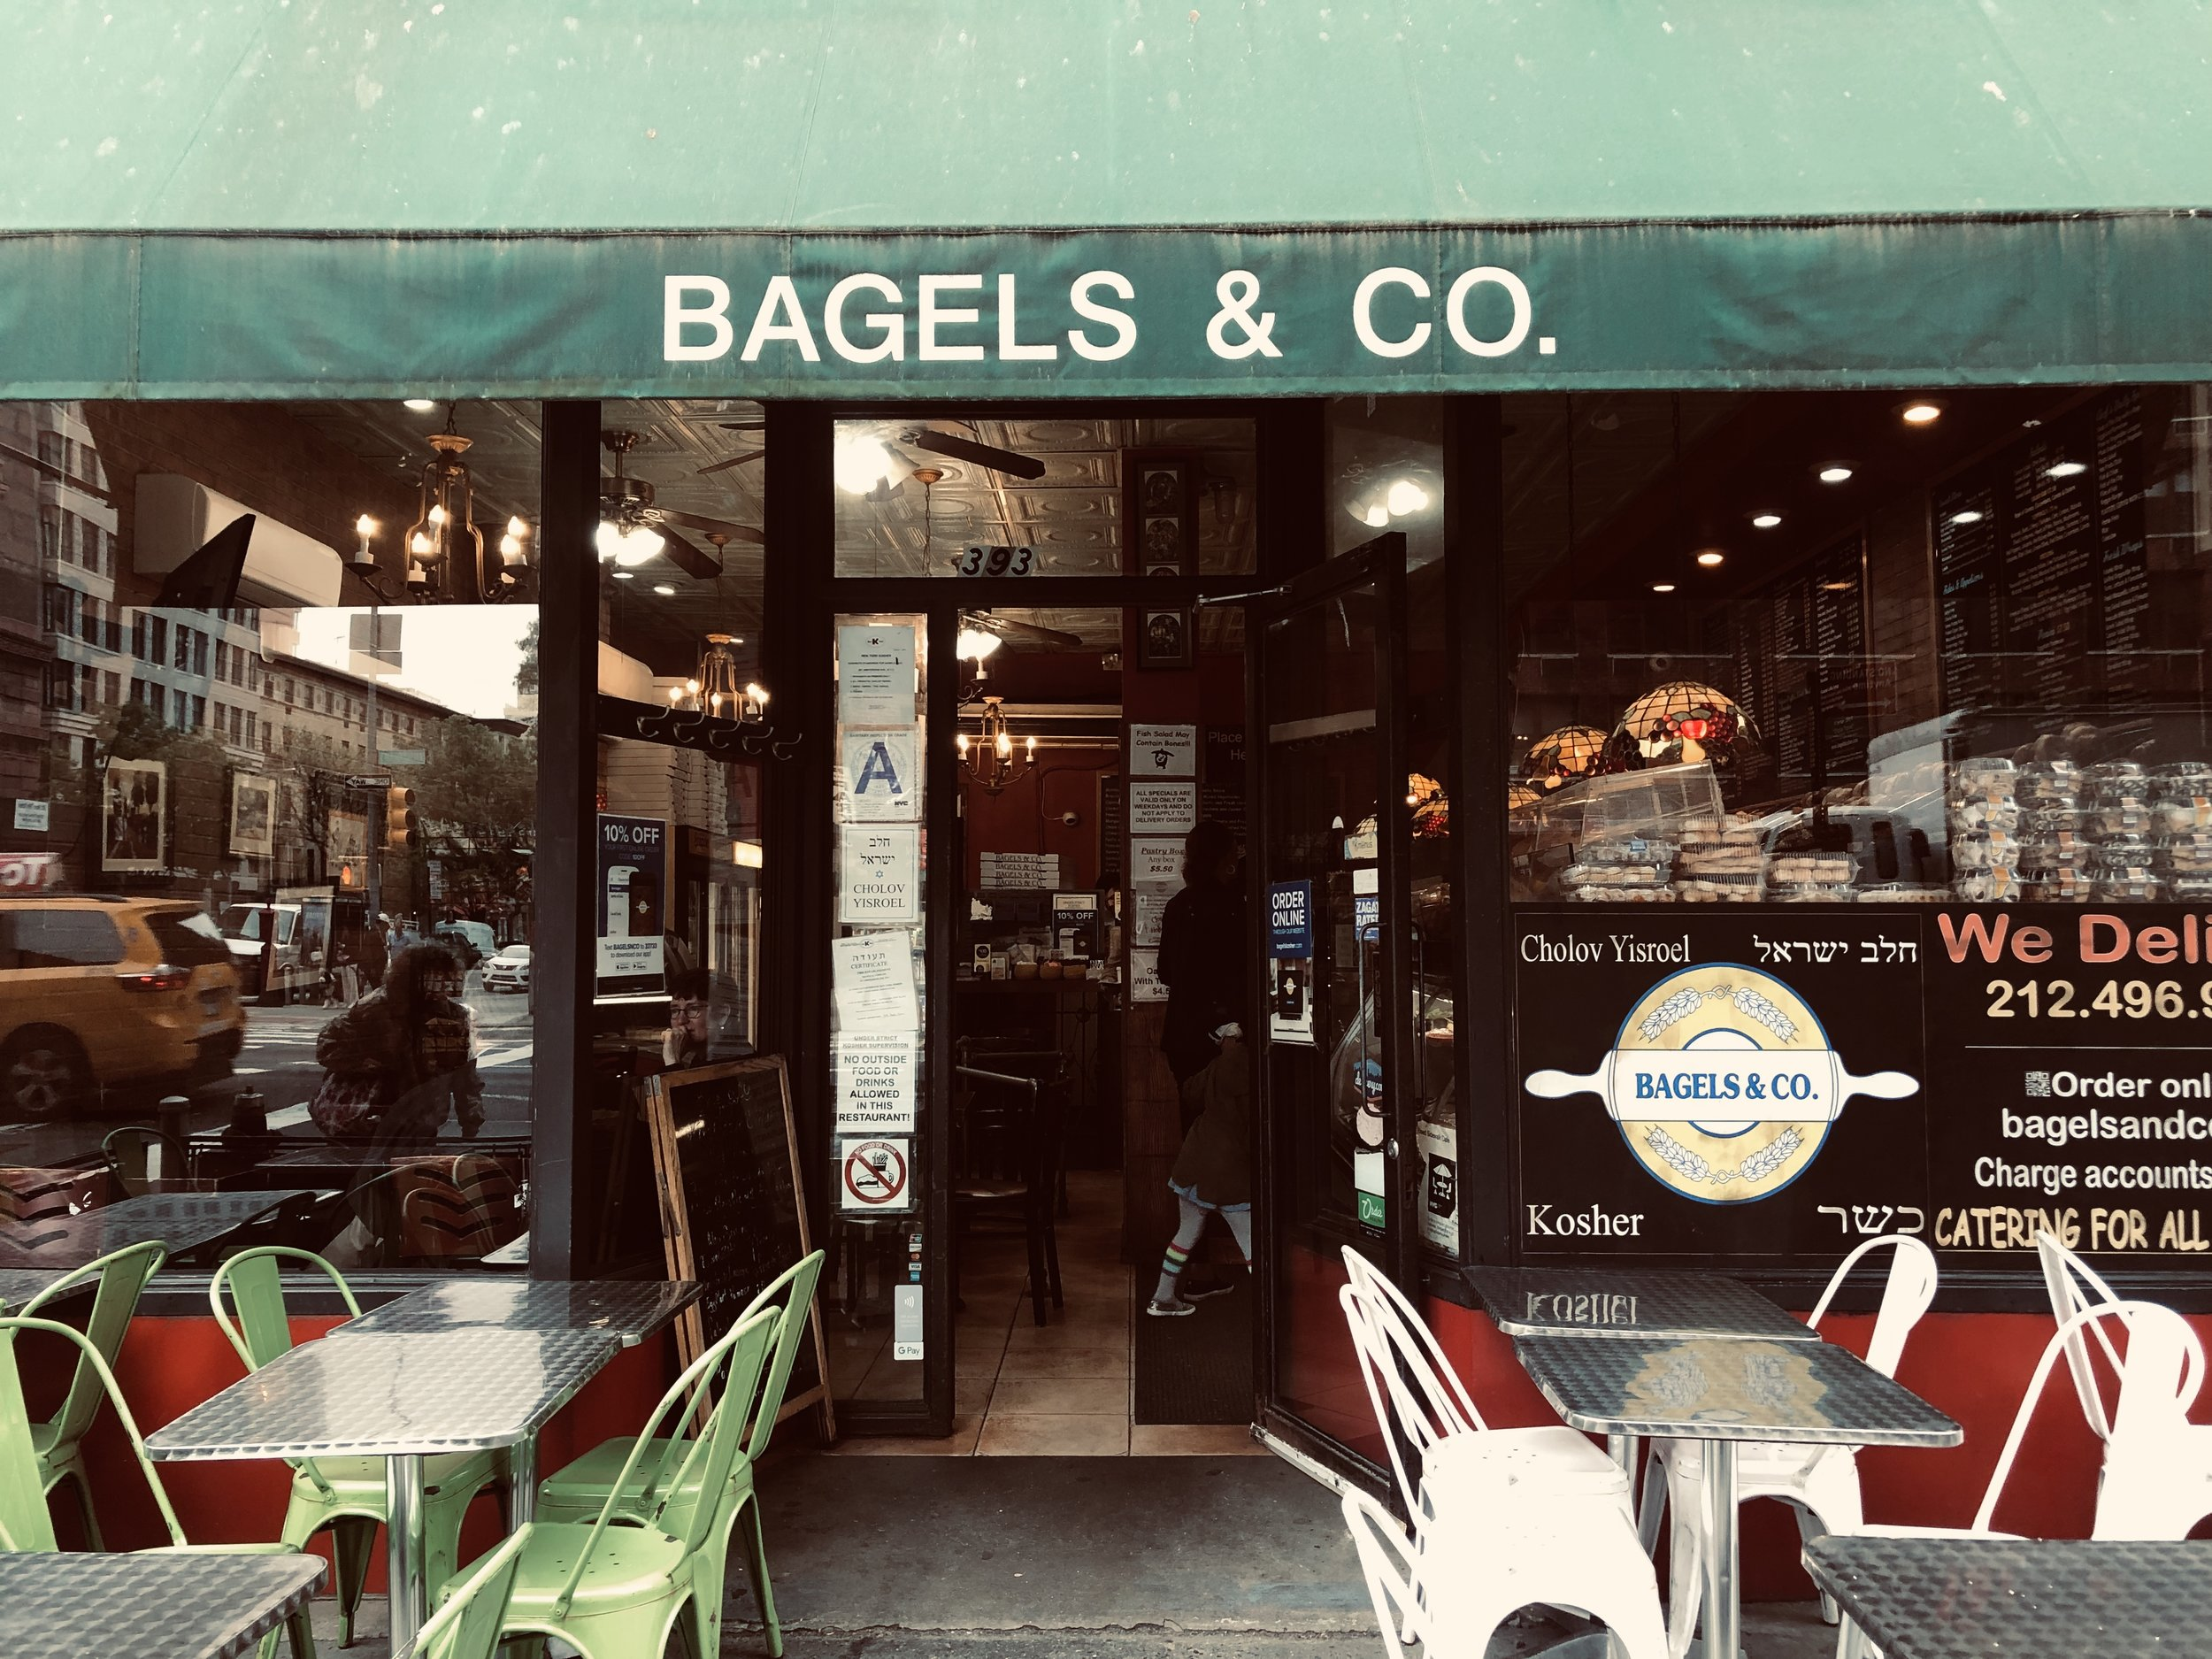 NYC Bagels & Co, Image taken by Samantha McHenry, 2019.